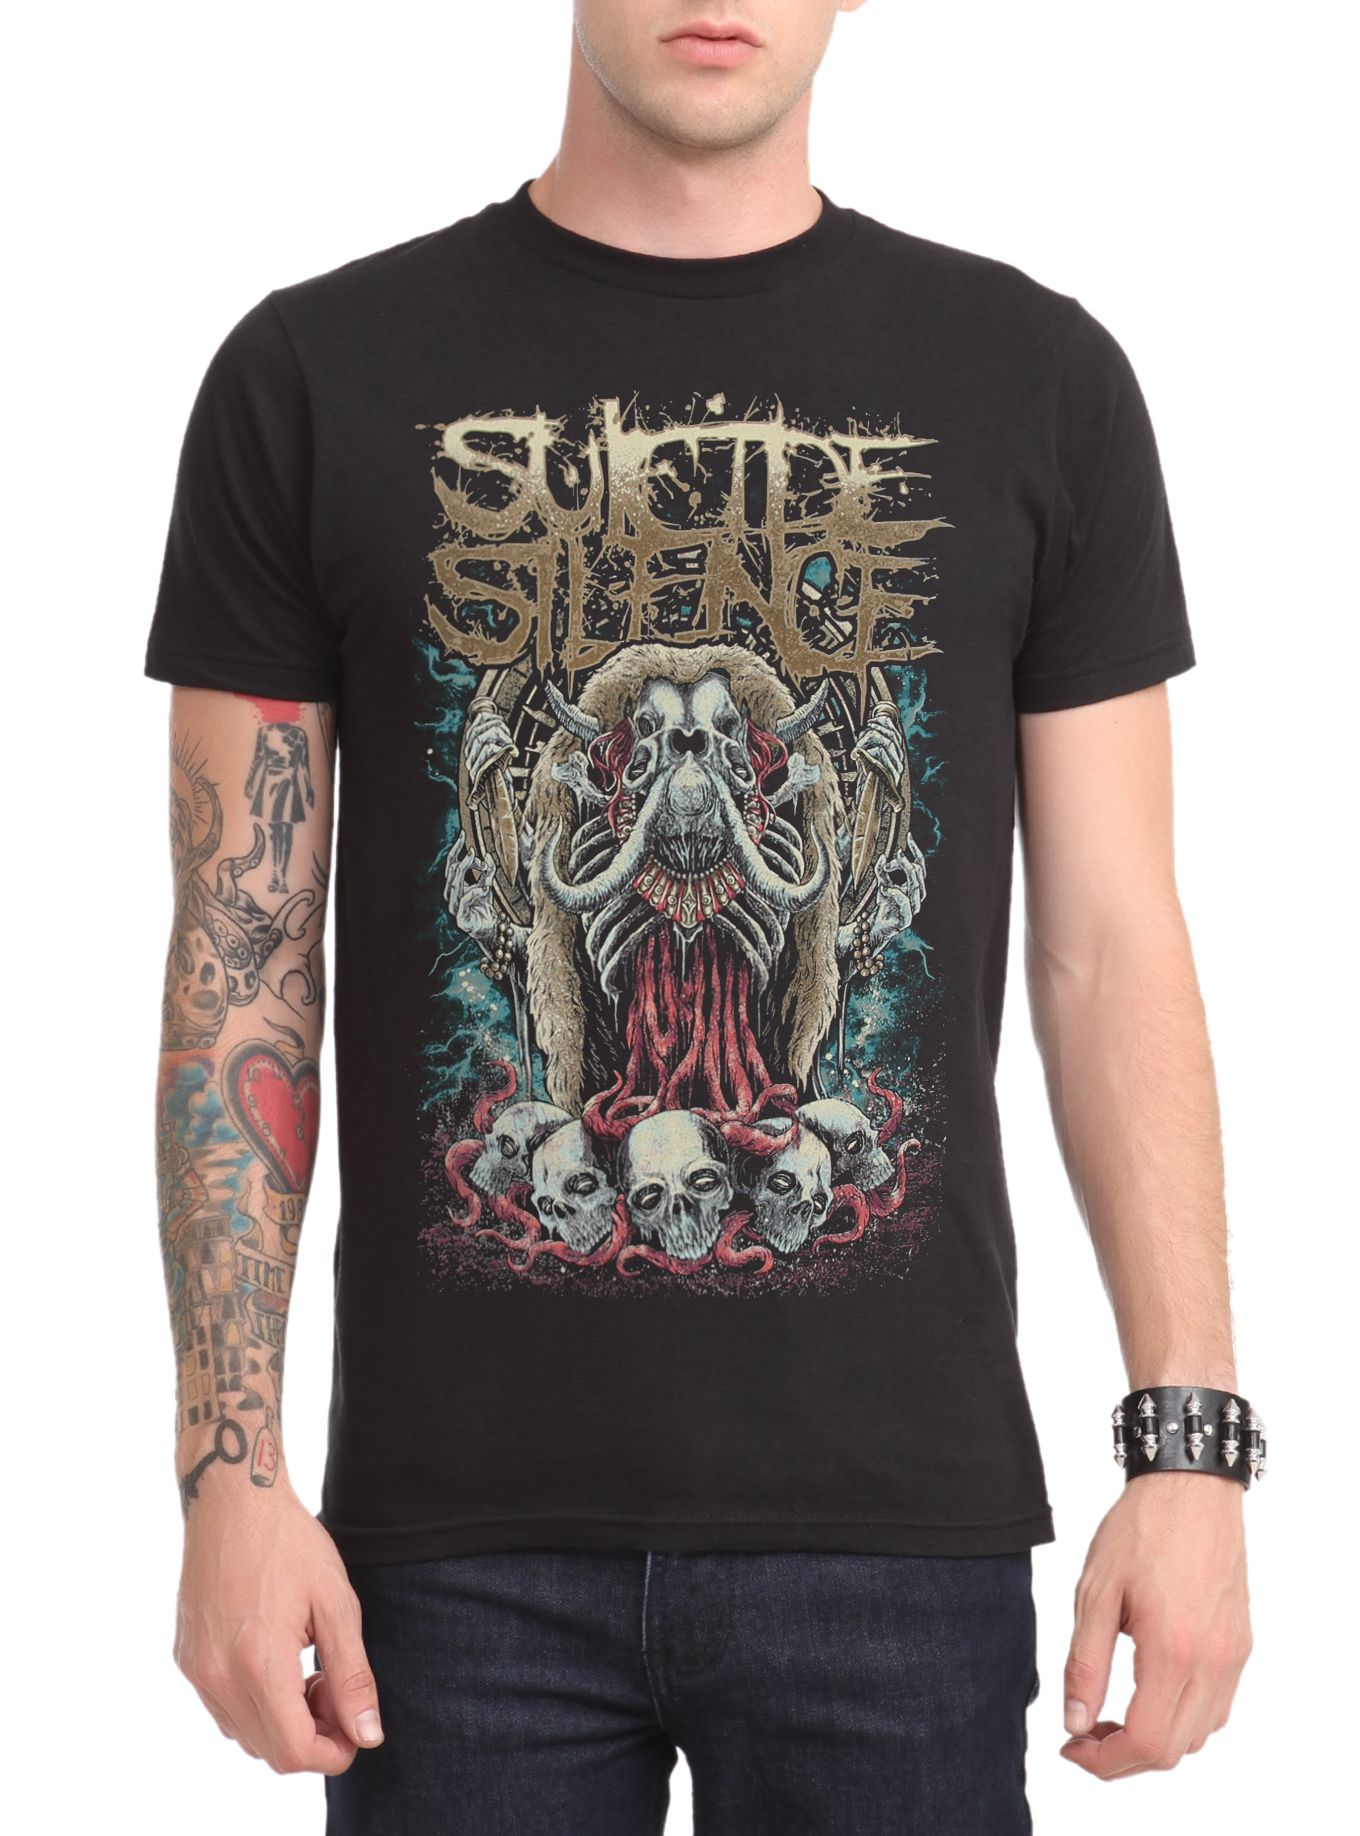 Suicide Silence Elephant T-Shirt   Hot Topic